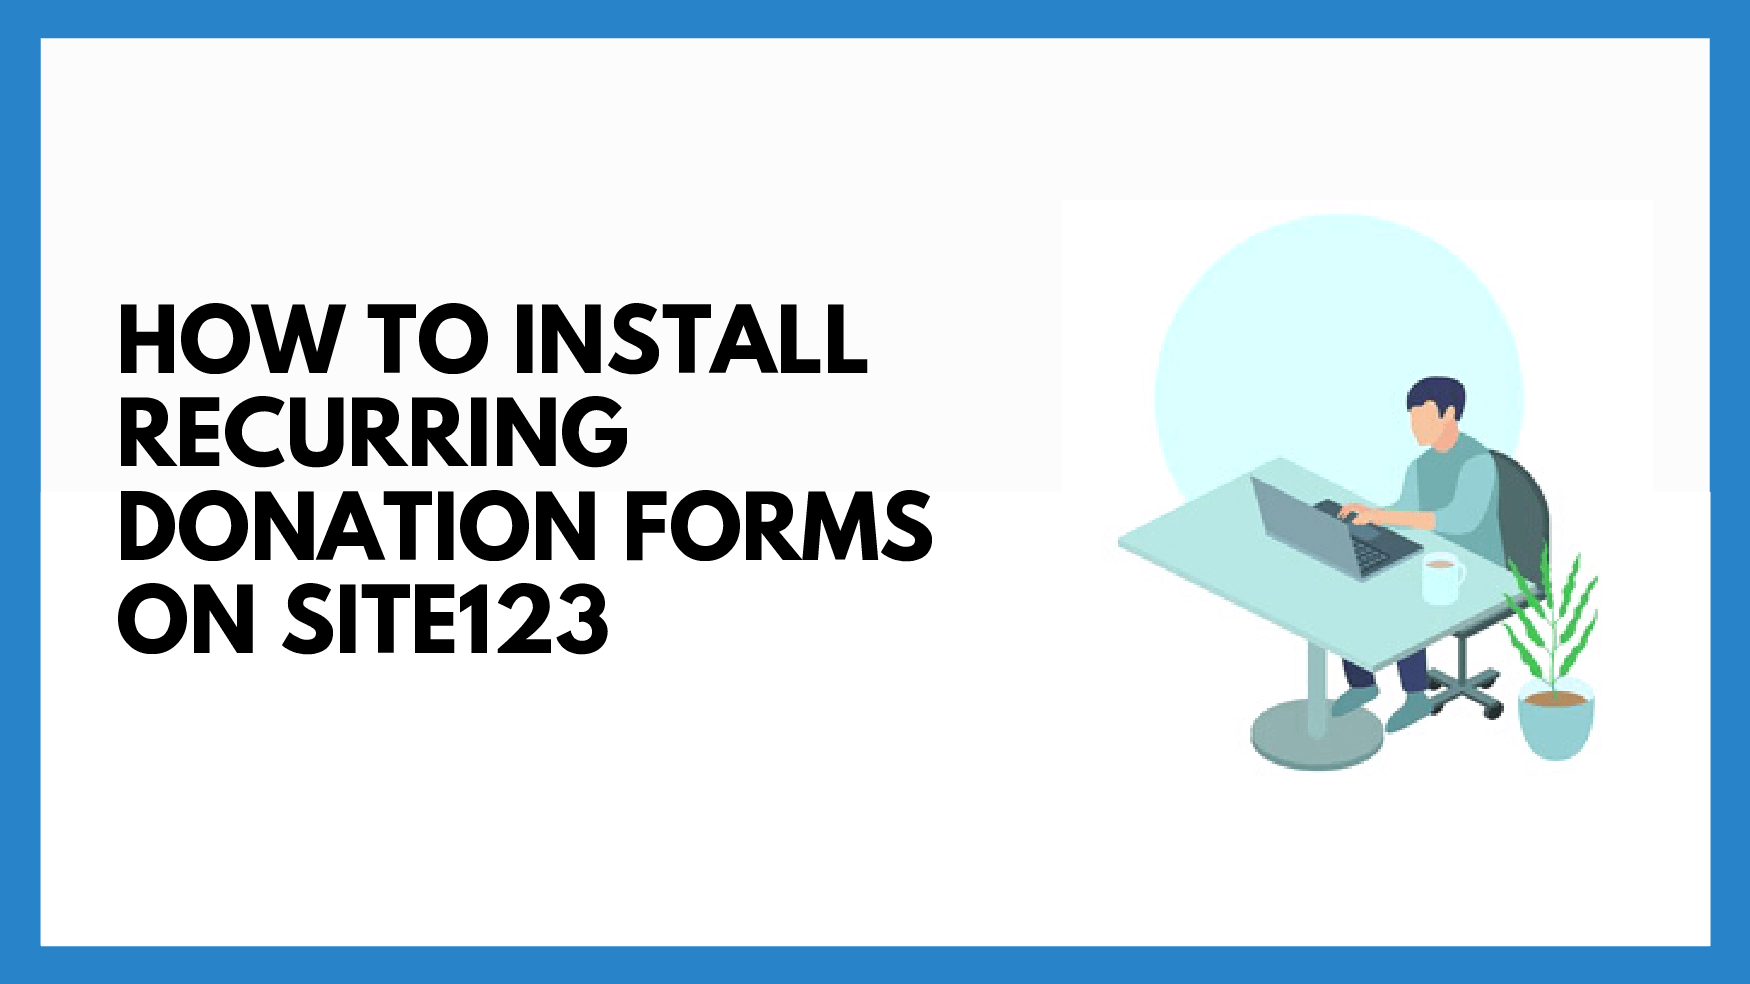 How To Install Recurring Donation Forms on Site123 with Donorbox